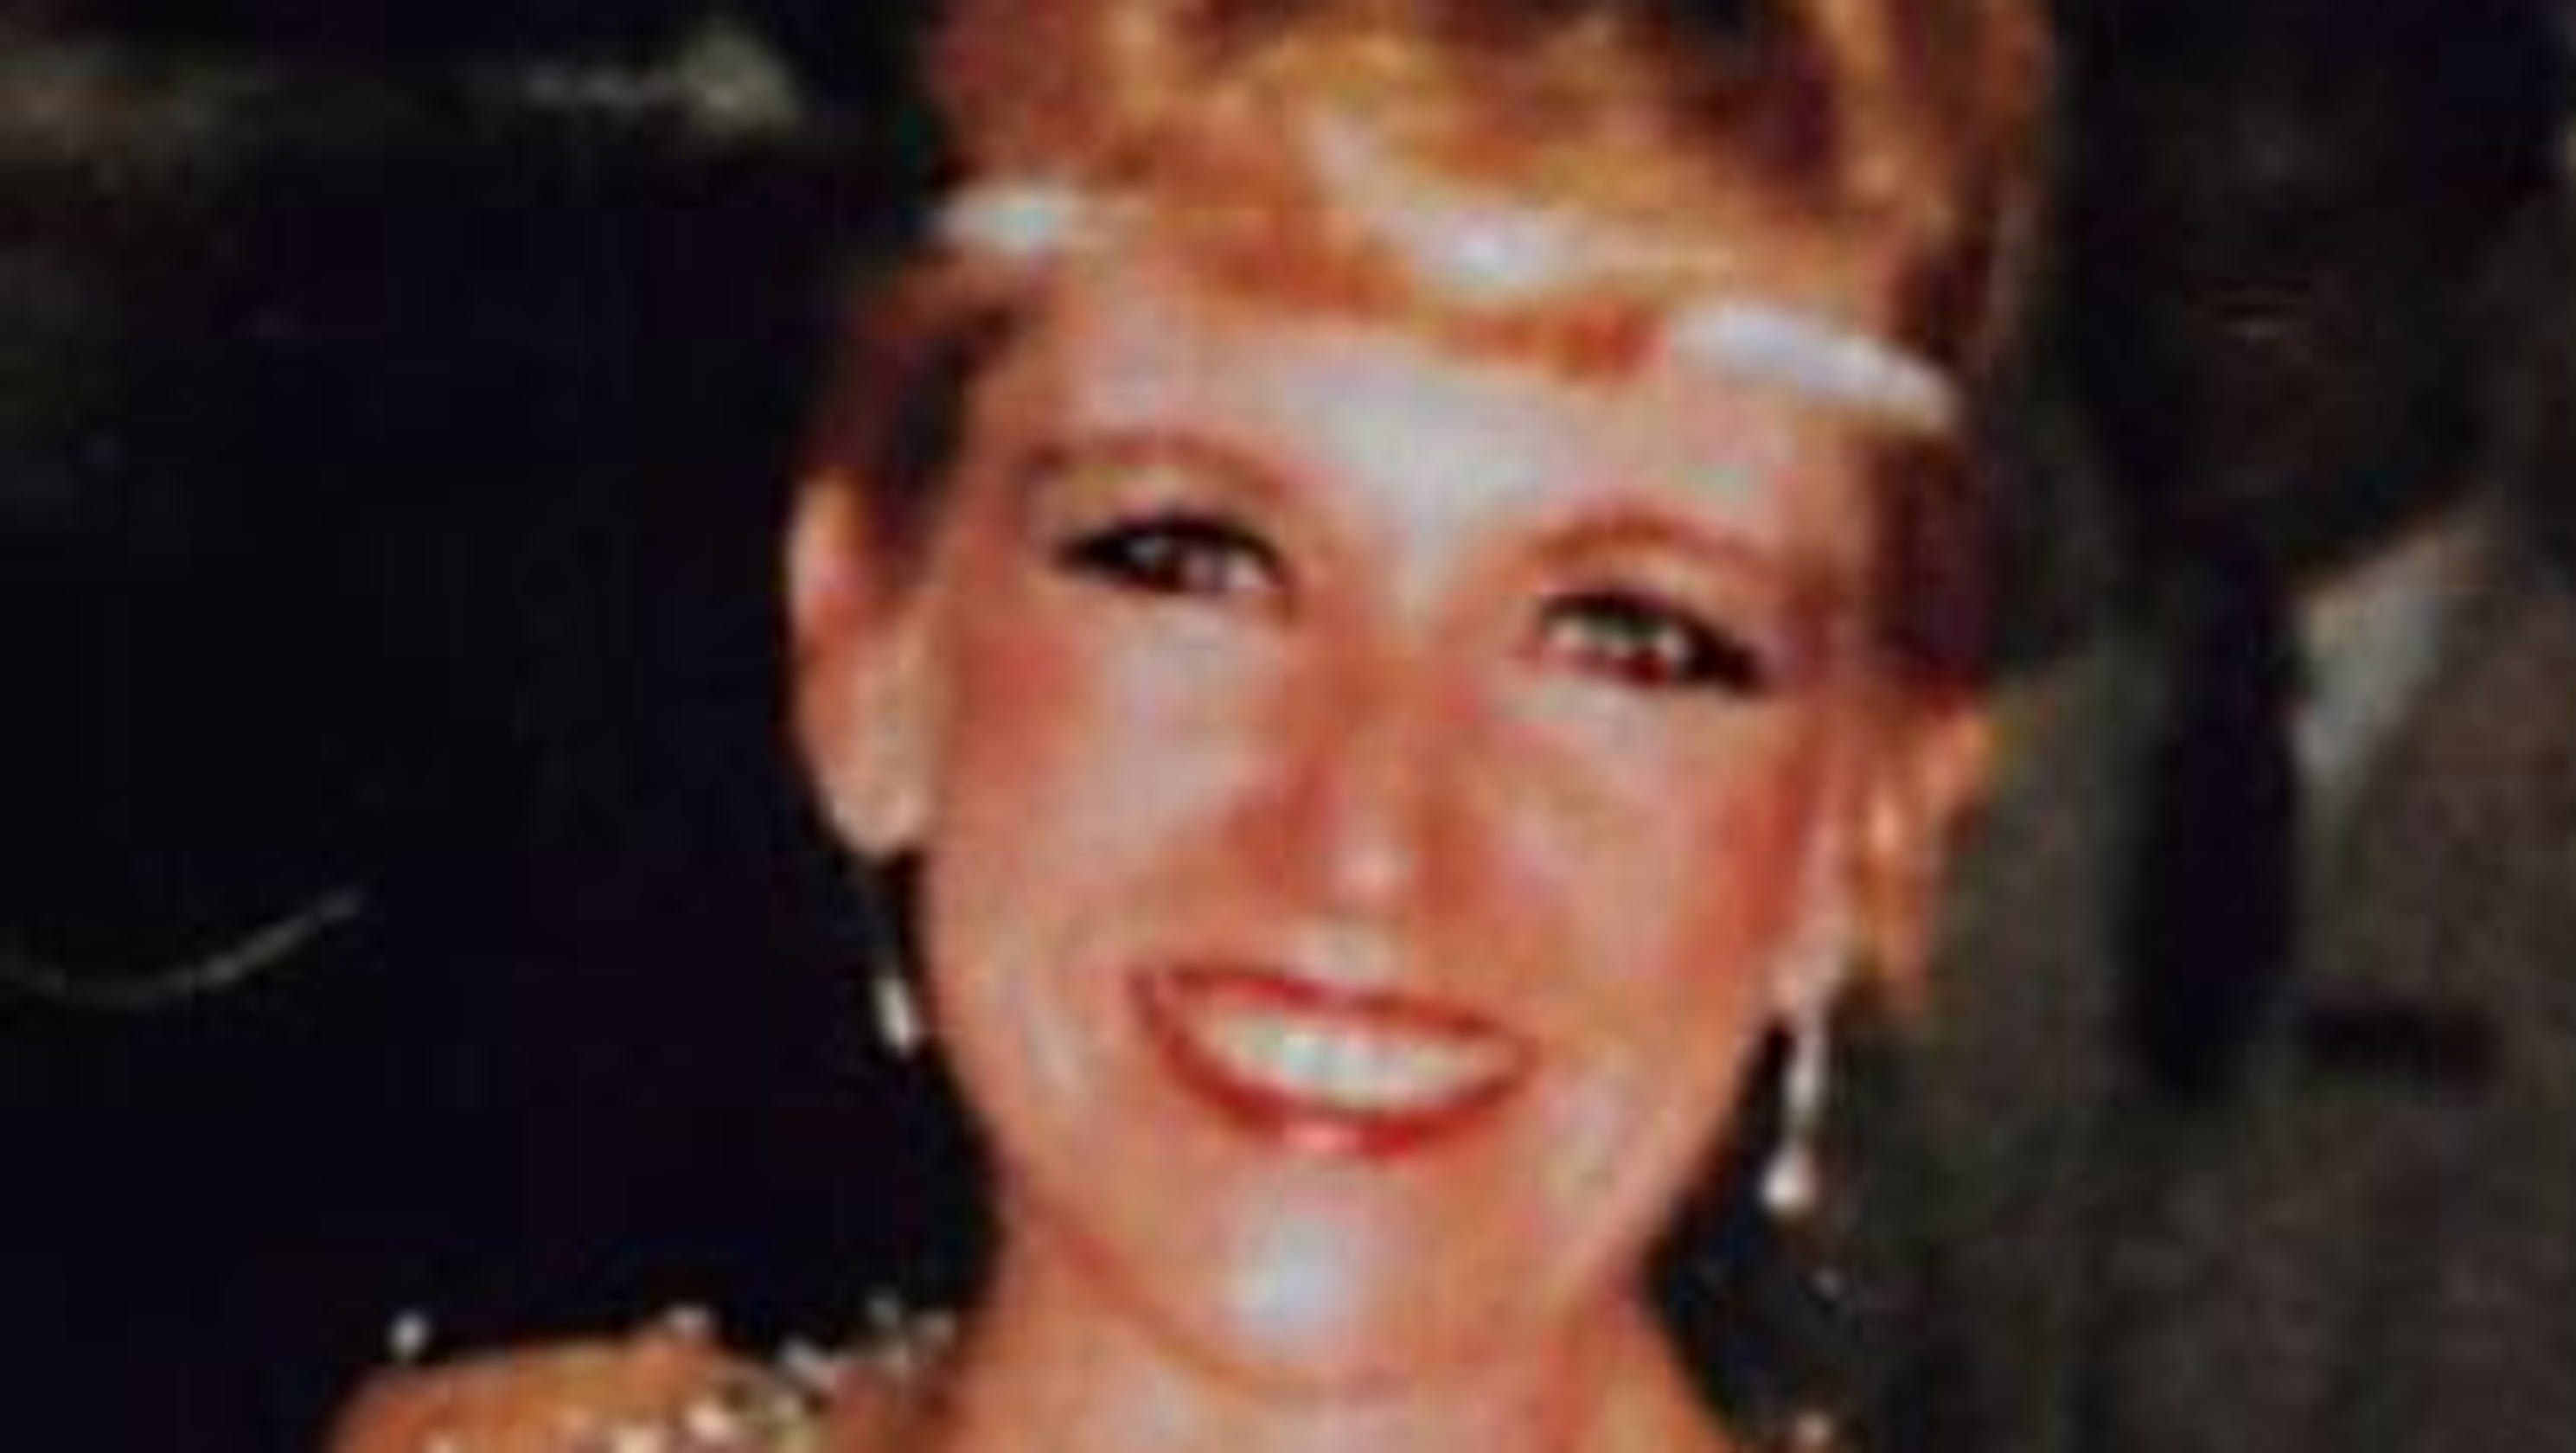 Pamela Cantaline homicide in 1985 gets new attention